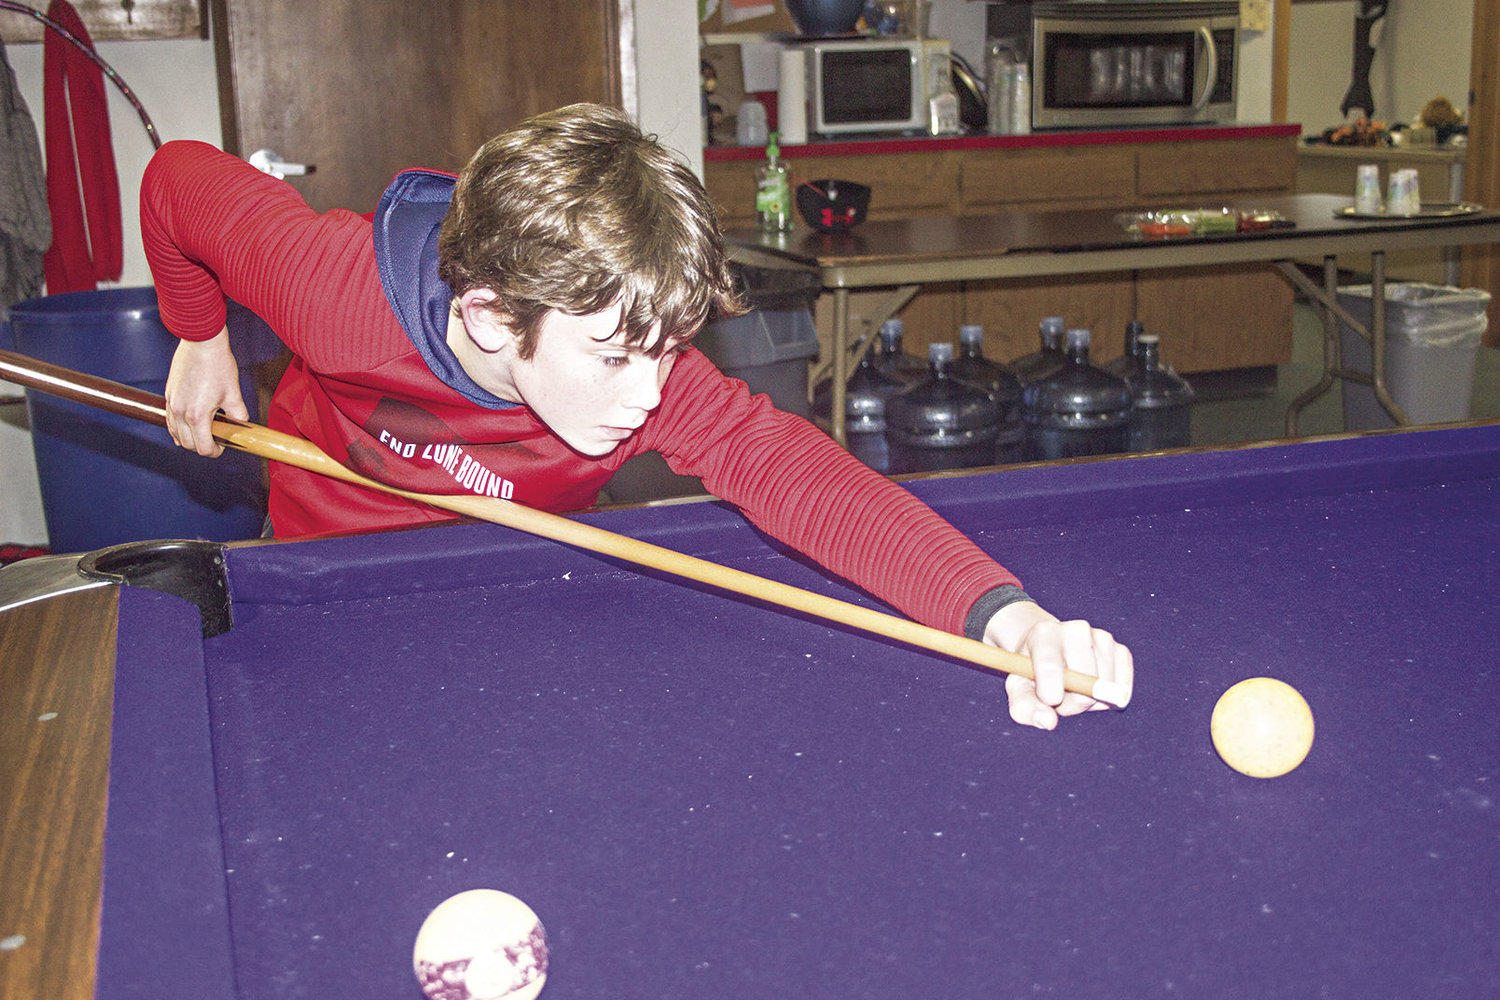 William Moseley takes aim at a pool table at the Jefferson Teen Center. Photos by Kirk Boxleitner